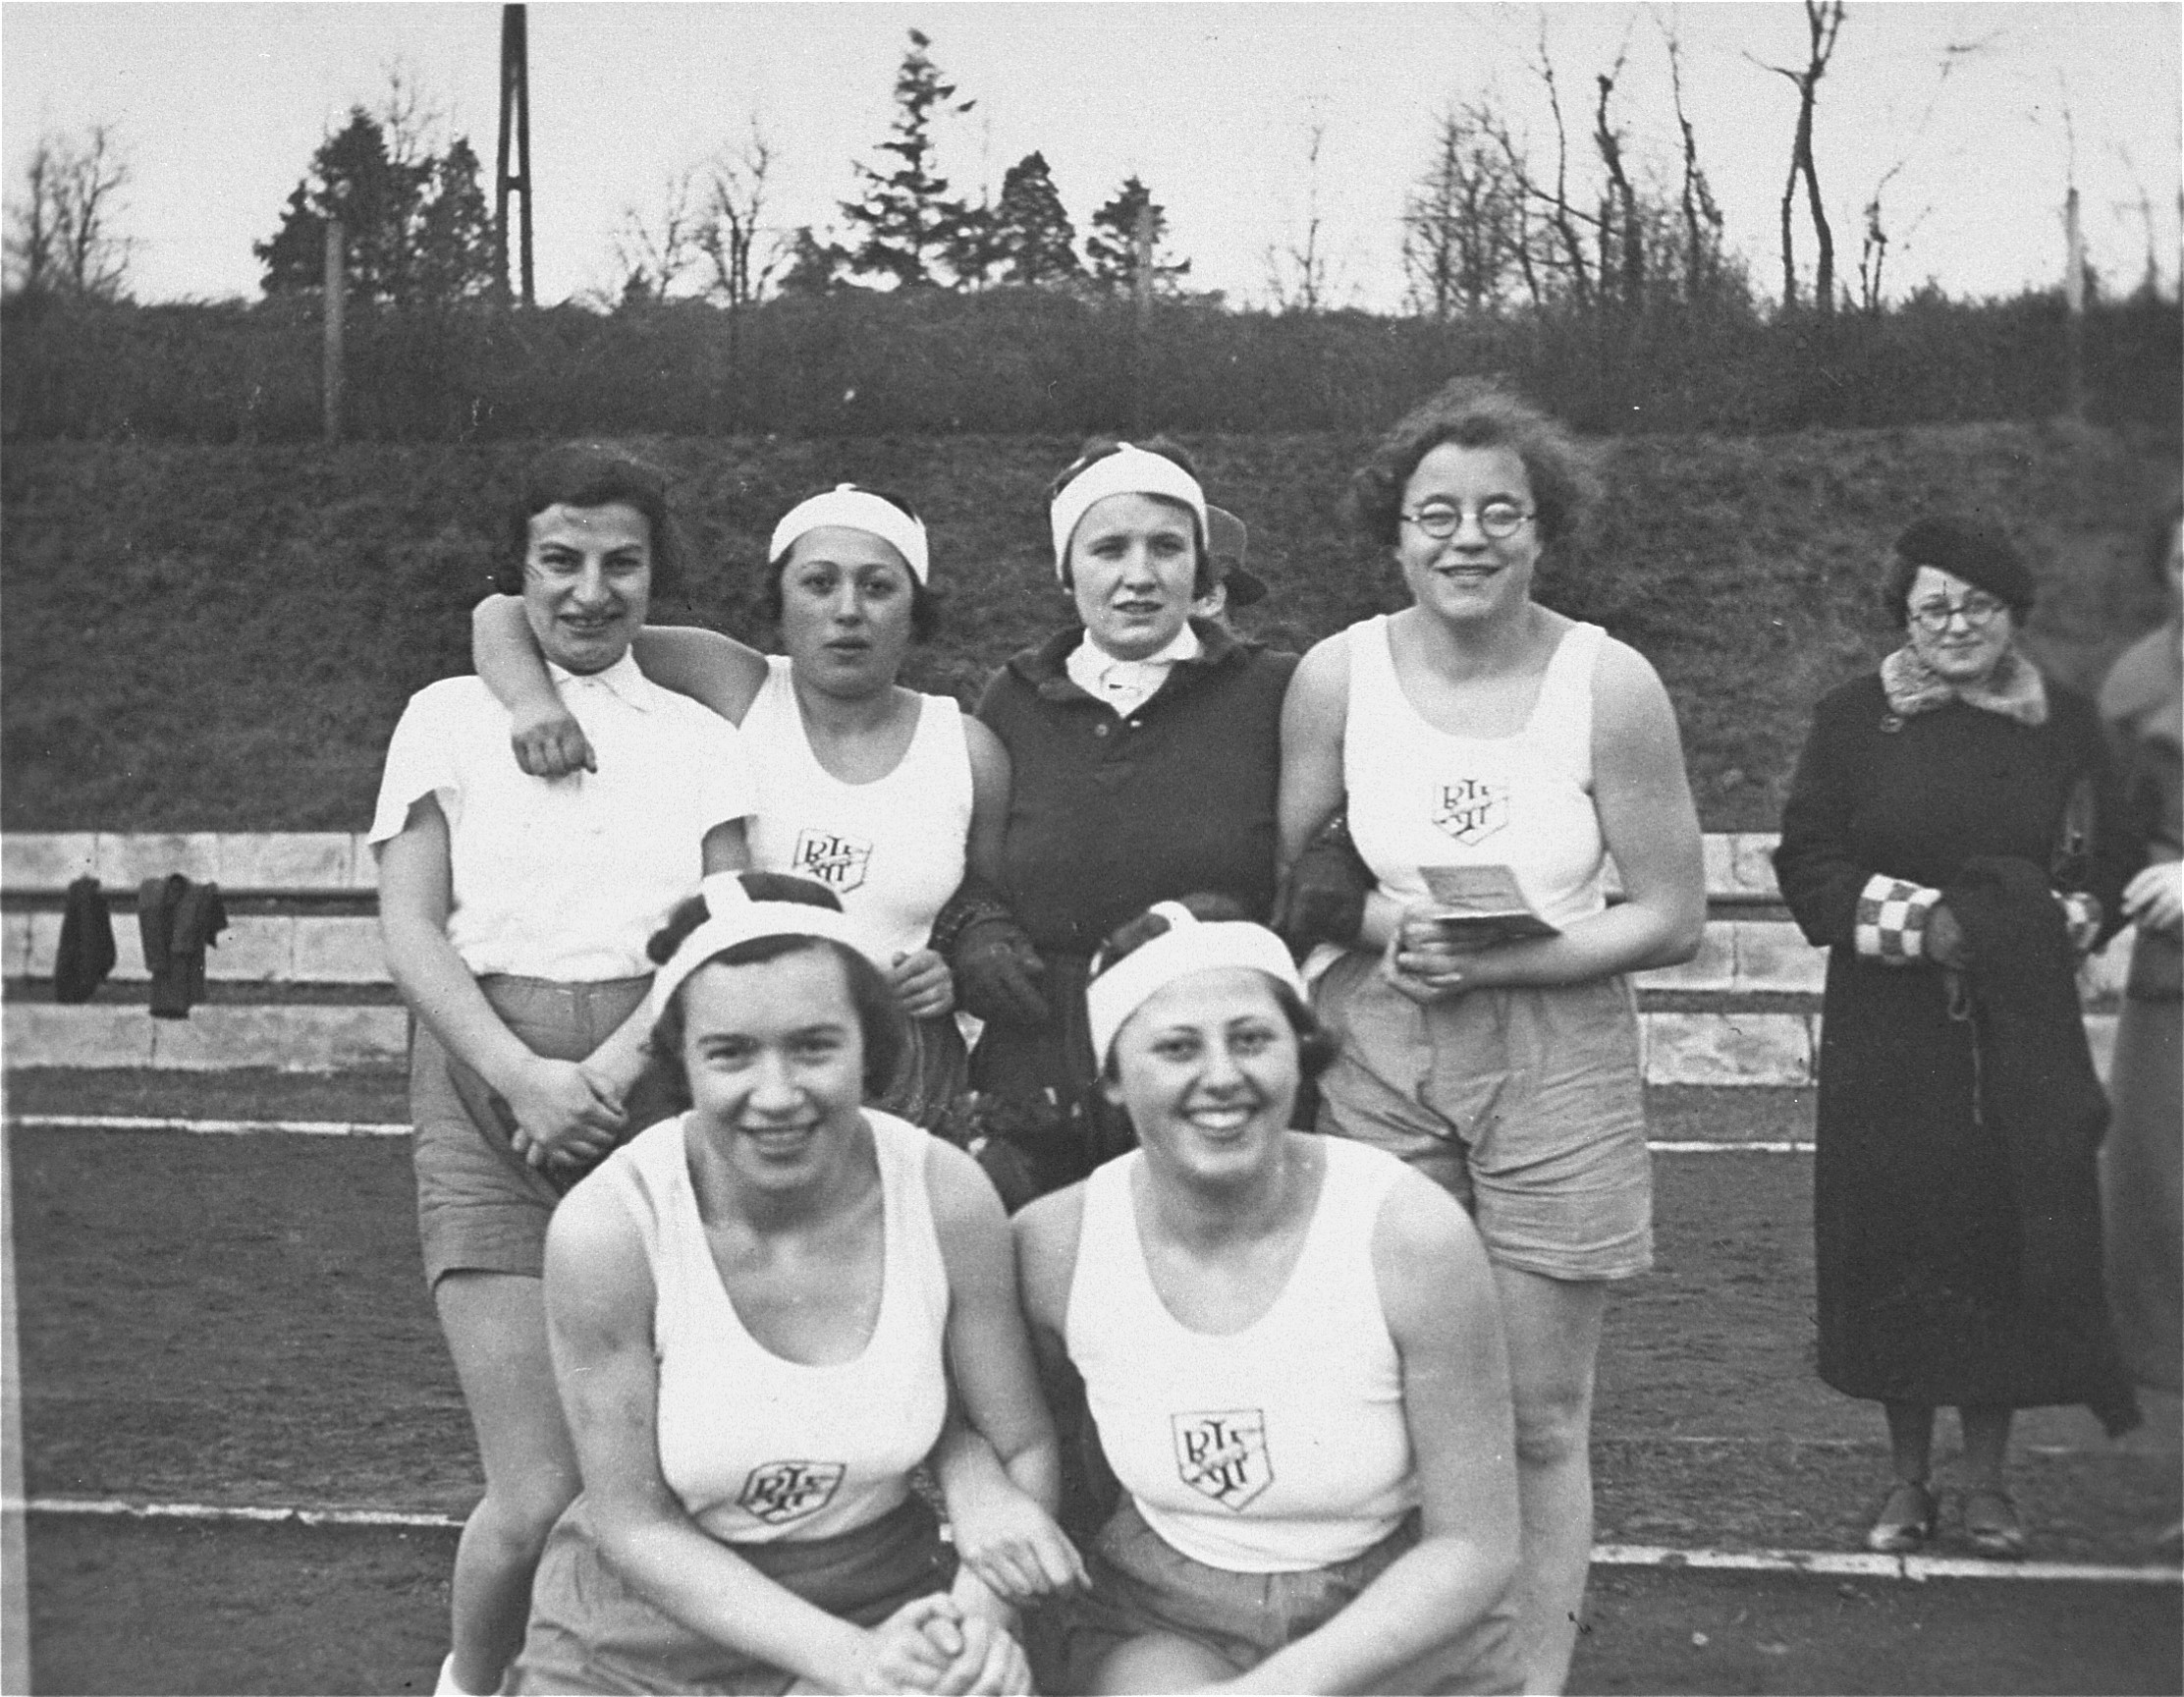 Group portrait of members of the women's handball team sponsored by the Reichsbund juedischer Frontsoldaten.    The donor, Ilse Dahl, is pictured in the front row, on the left.